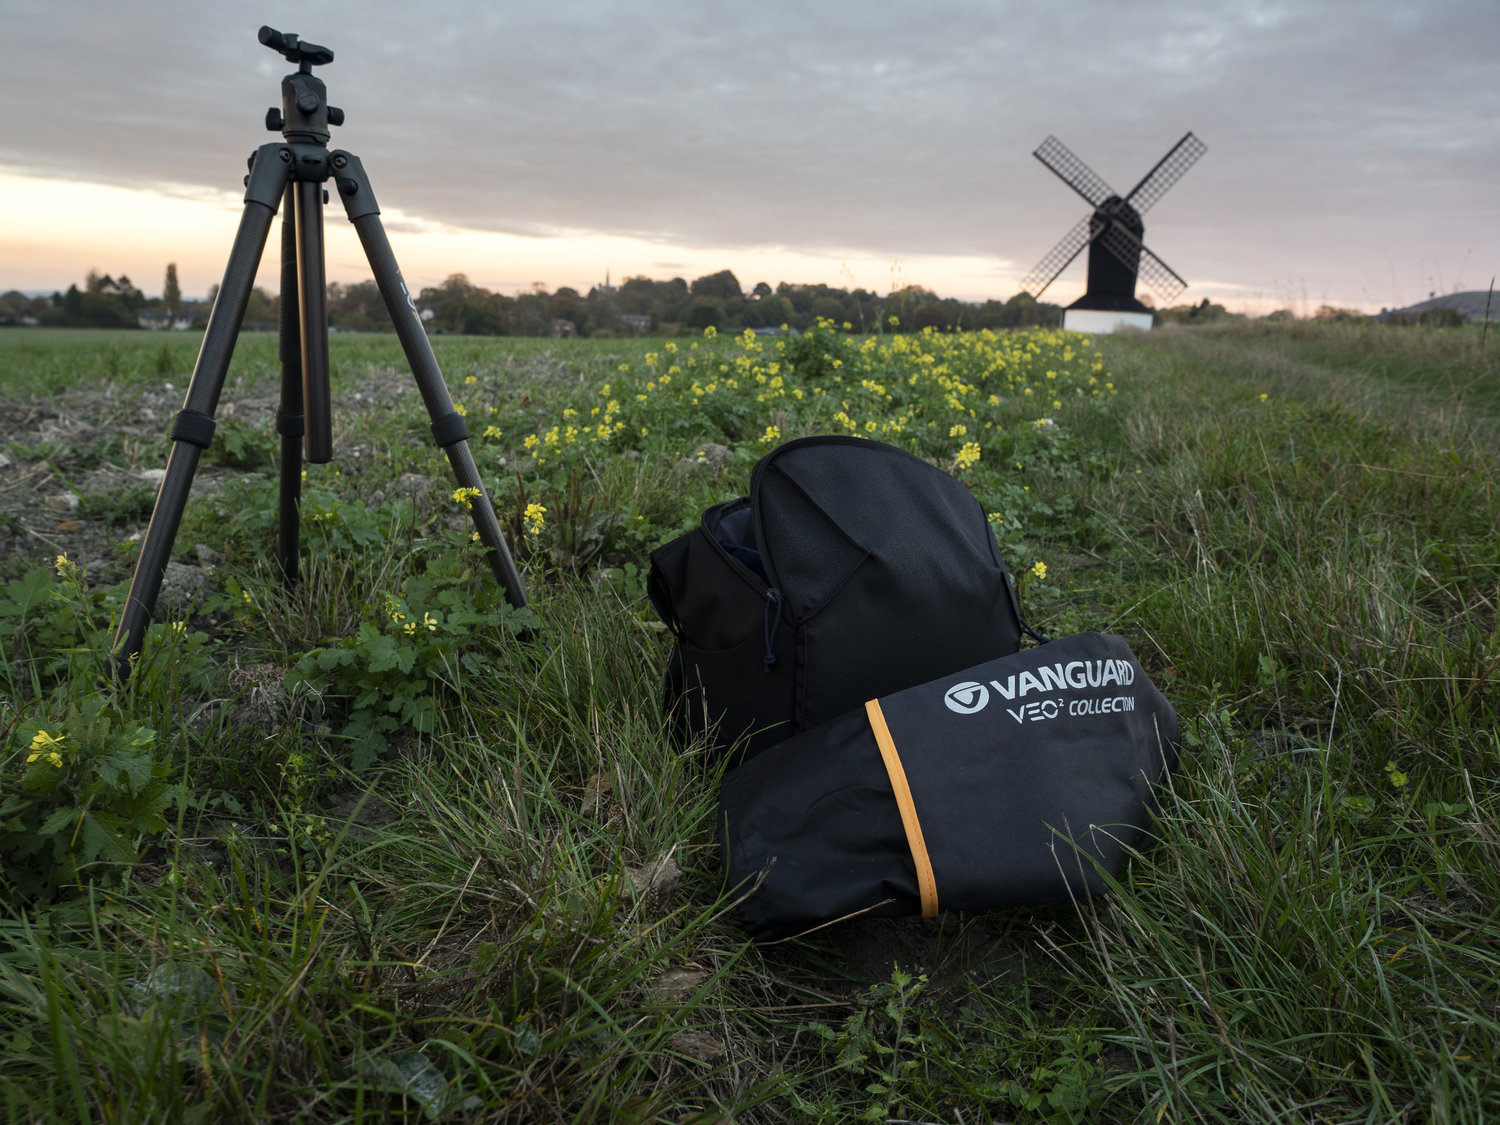 Vanguard Veo 2 265CB - Read an extensive review on the Vanguard Veo 2 265CB carbon fibre travel tripod. It's strengths and benefits to using the carbon fibre travel tripod which weighs a mere 1.3kg but extended to over 150cm!